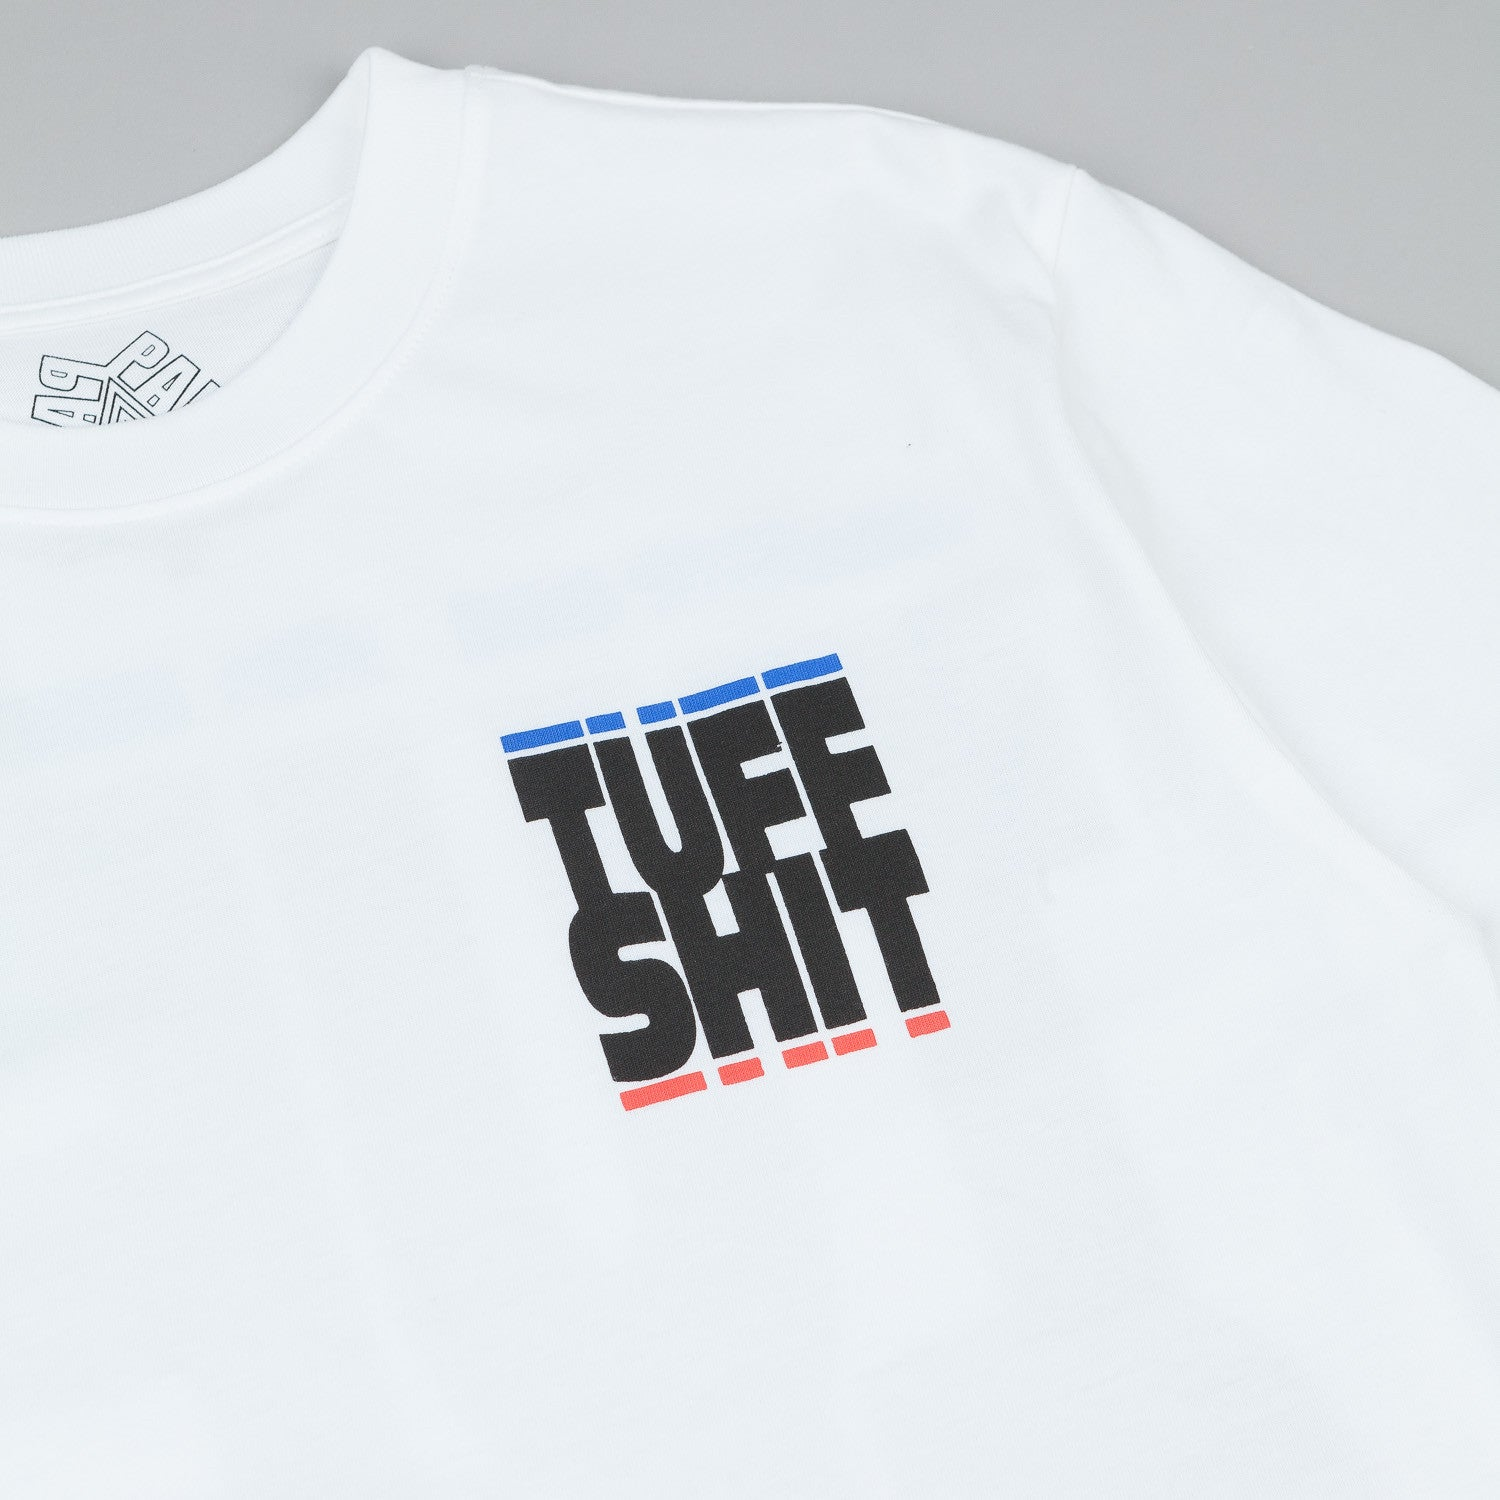 Palace Tuff Shit T-Shirt - White